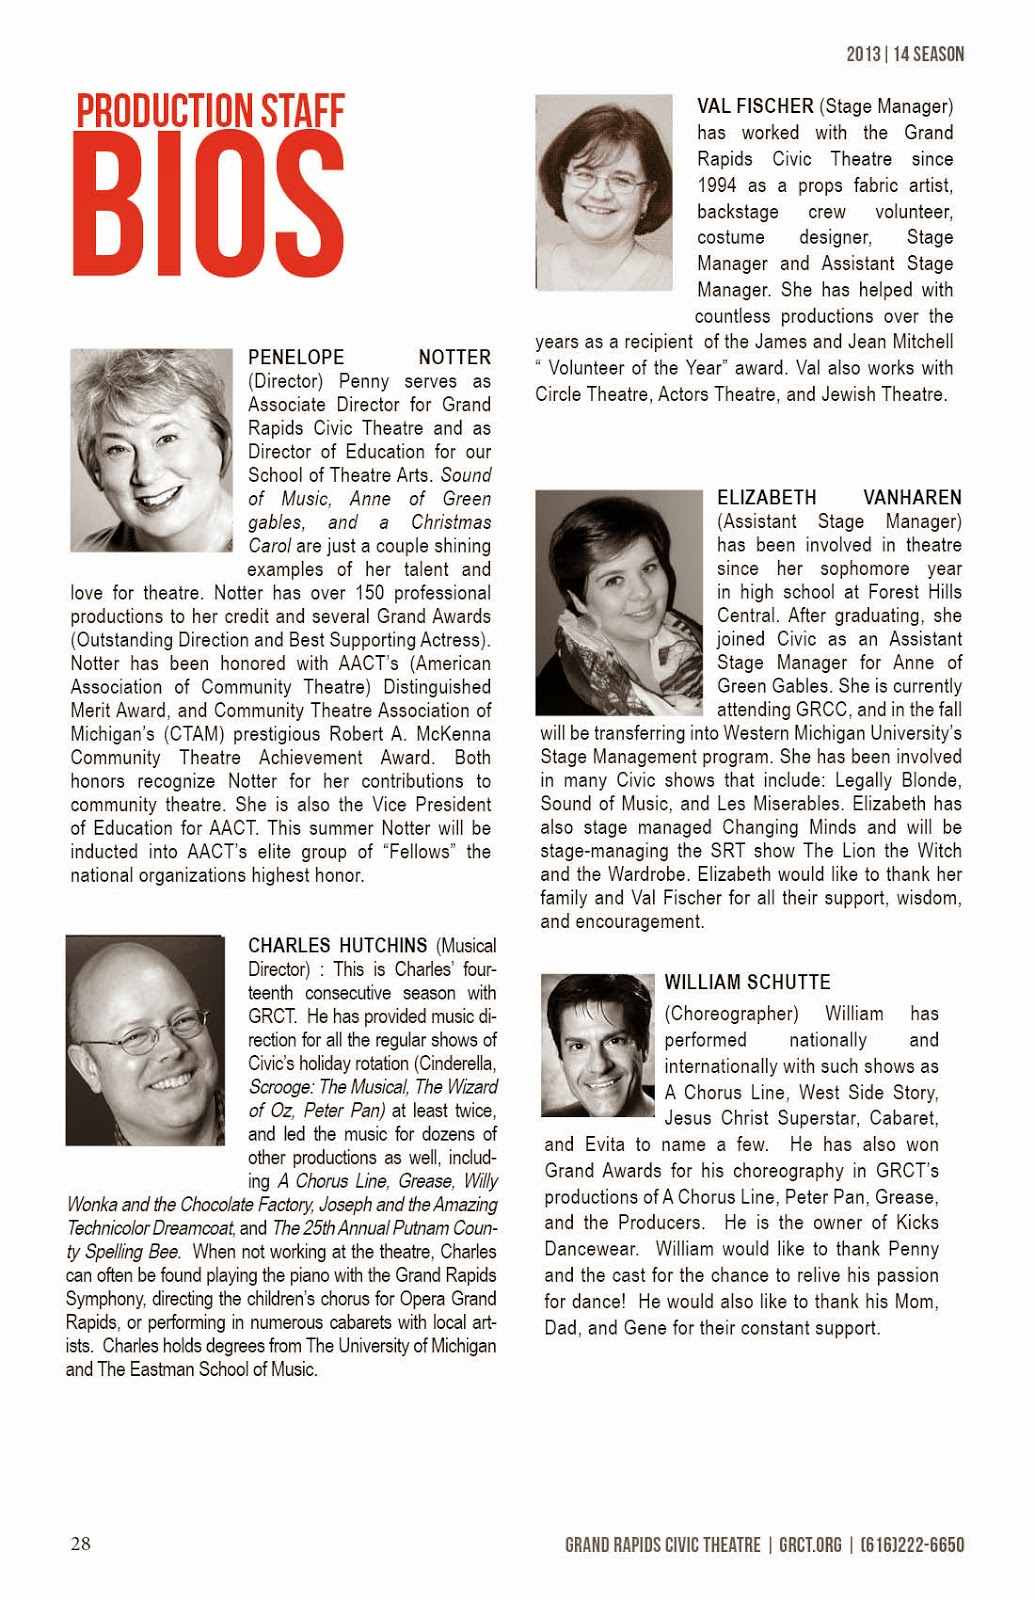 9 TO 5 THE MUSICAL Cast Bios